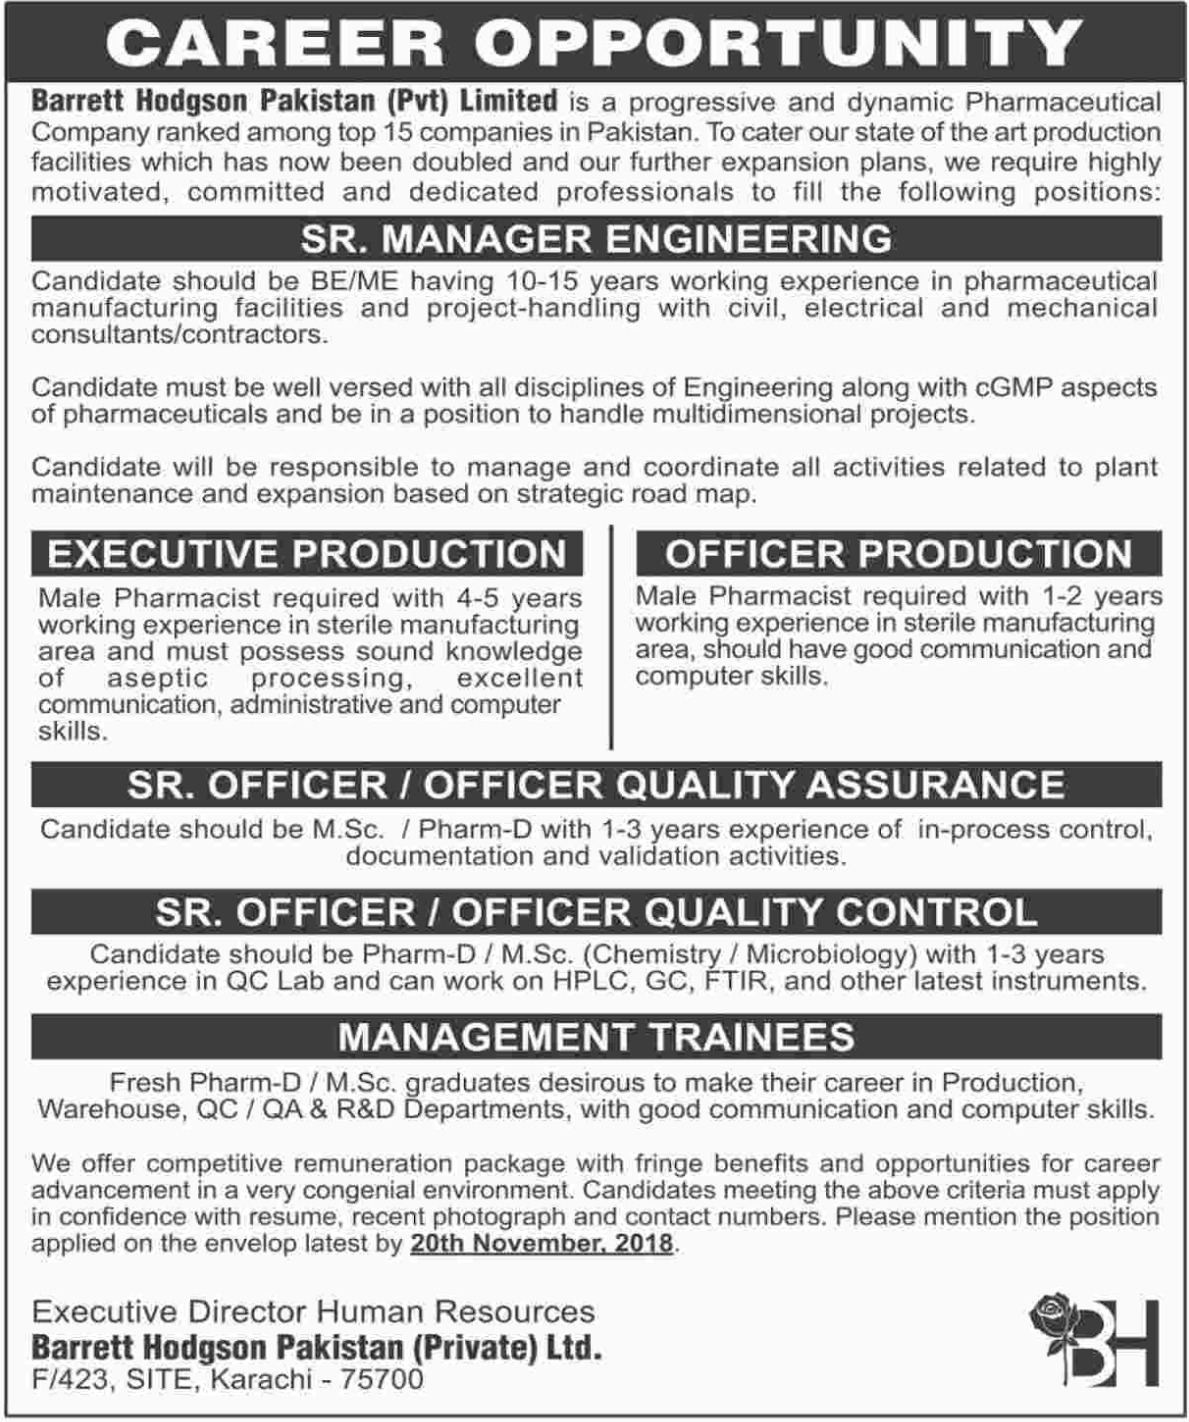 Barrett Hodgson Pakistan Pvt Ltd Jobs Latest 2018